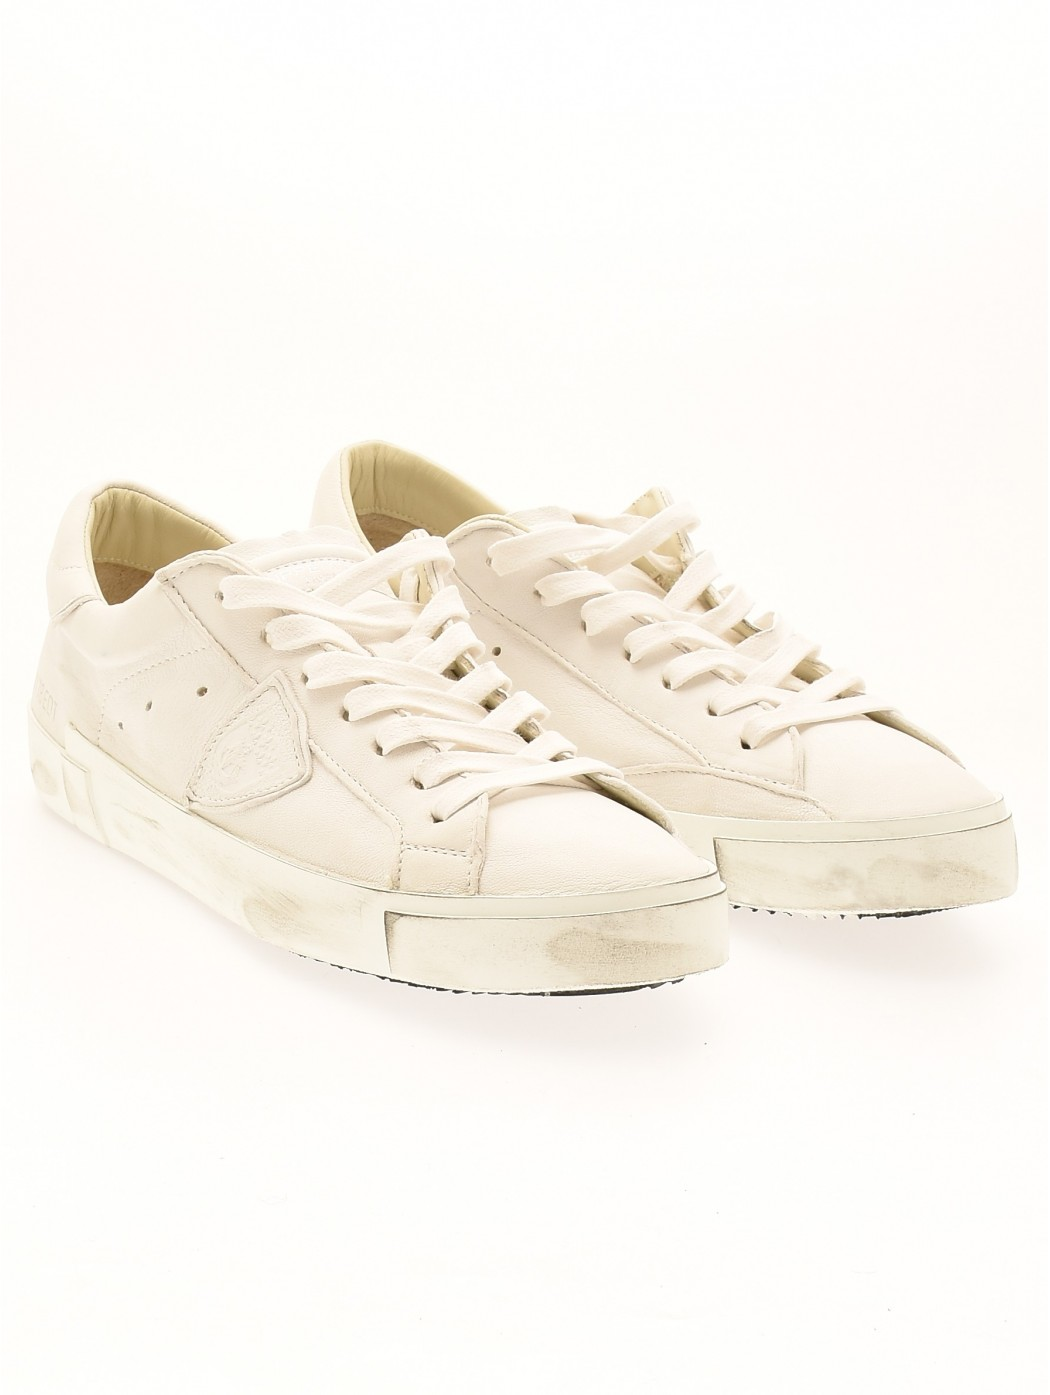 SNEAKERS UOMO PRSX PHILIPPE MODEL PRLU 1012